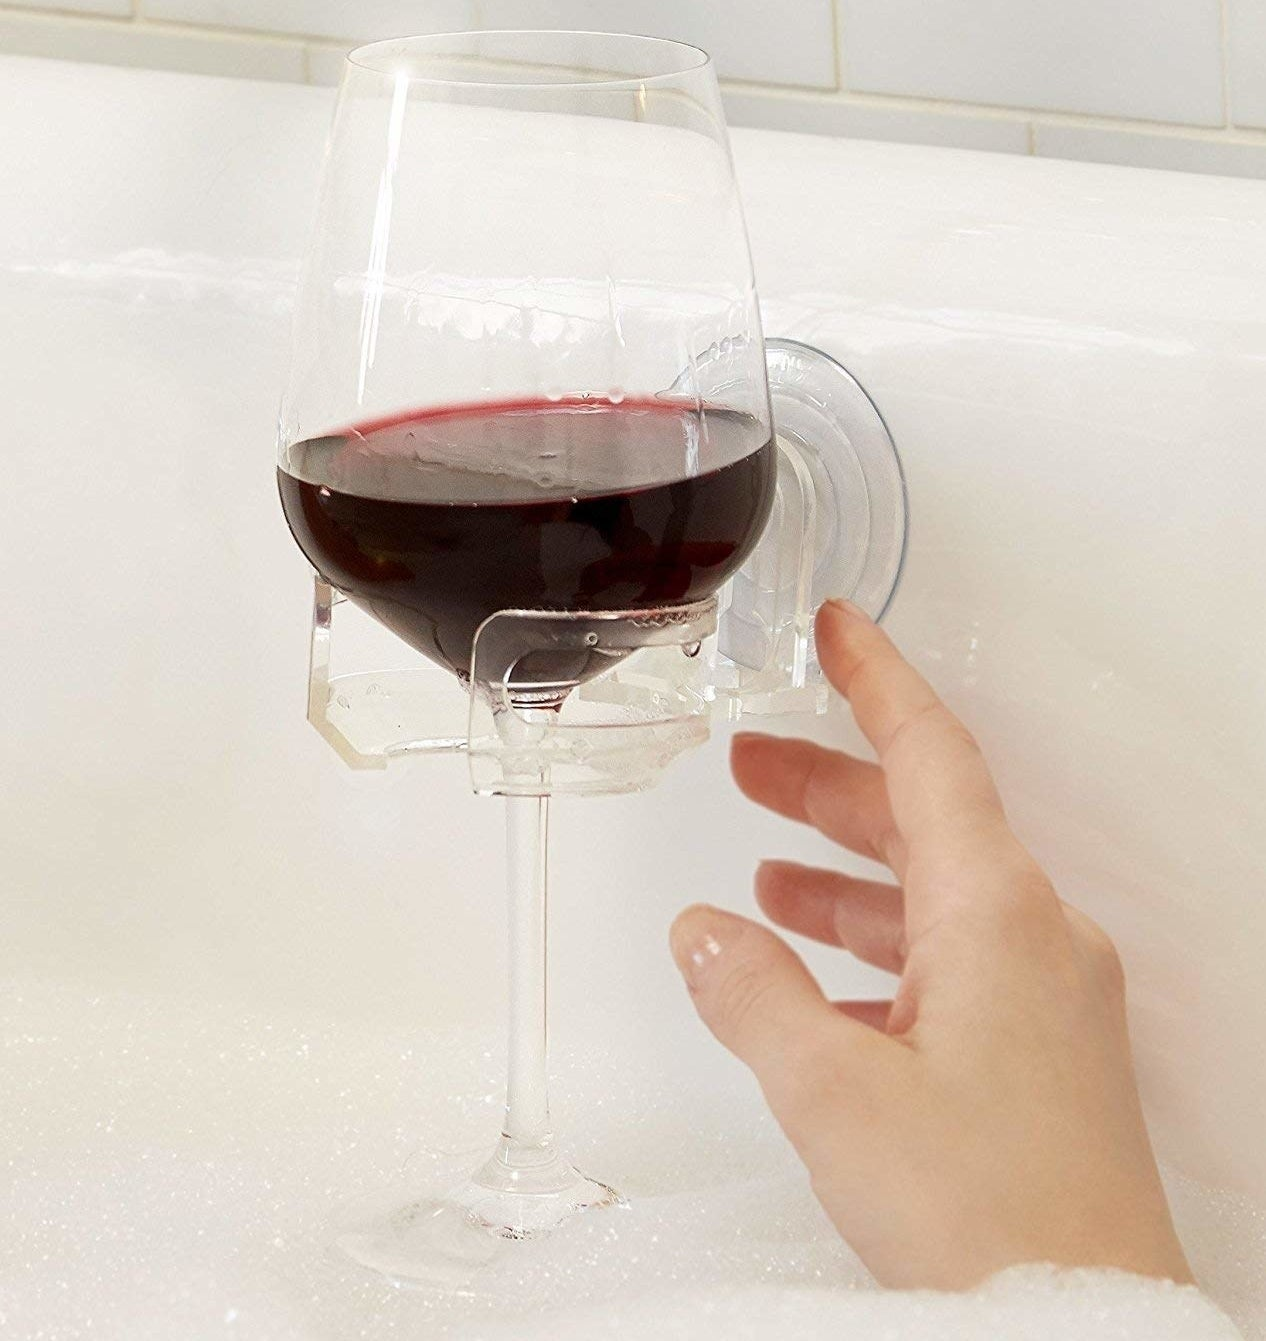 hand reaching for wine glass in clear suction cup bathtub holder